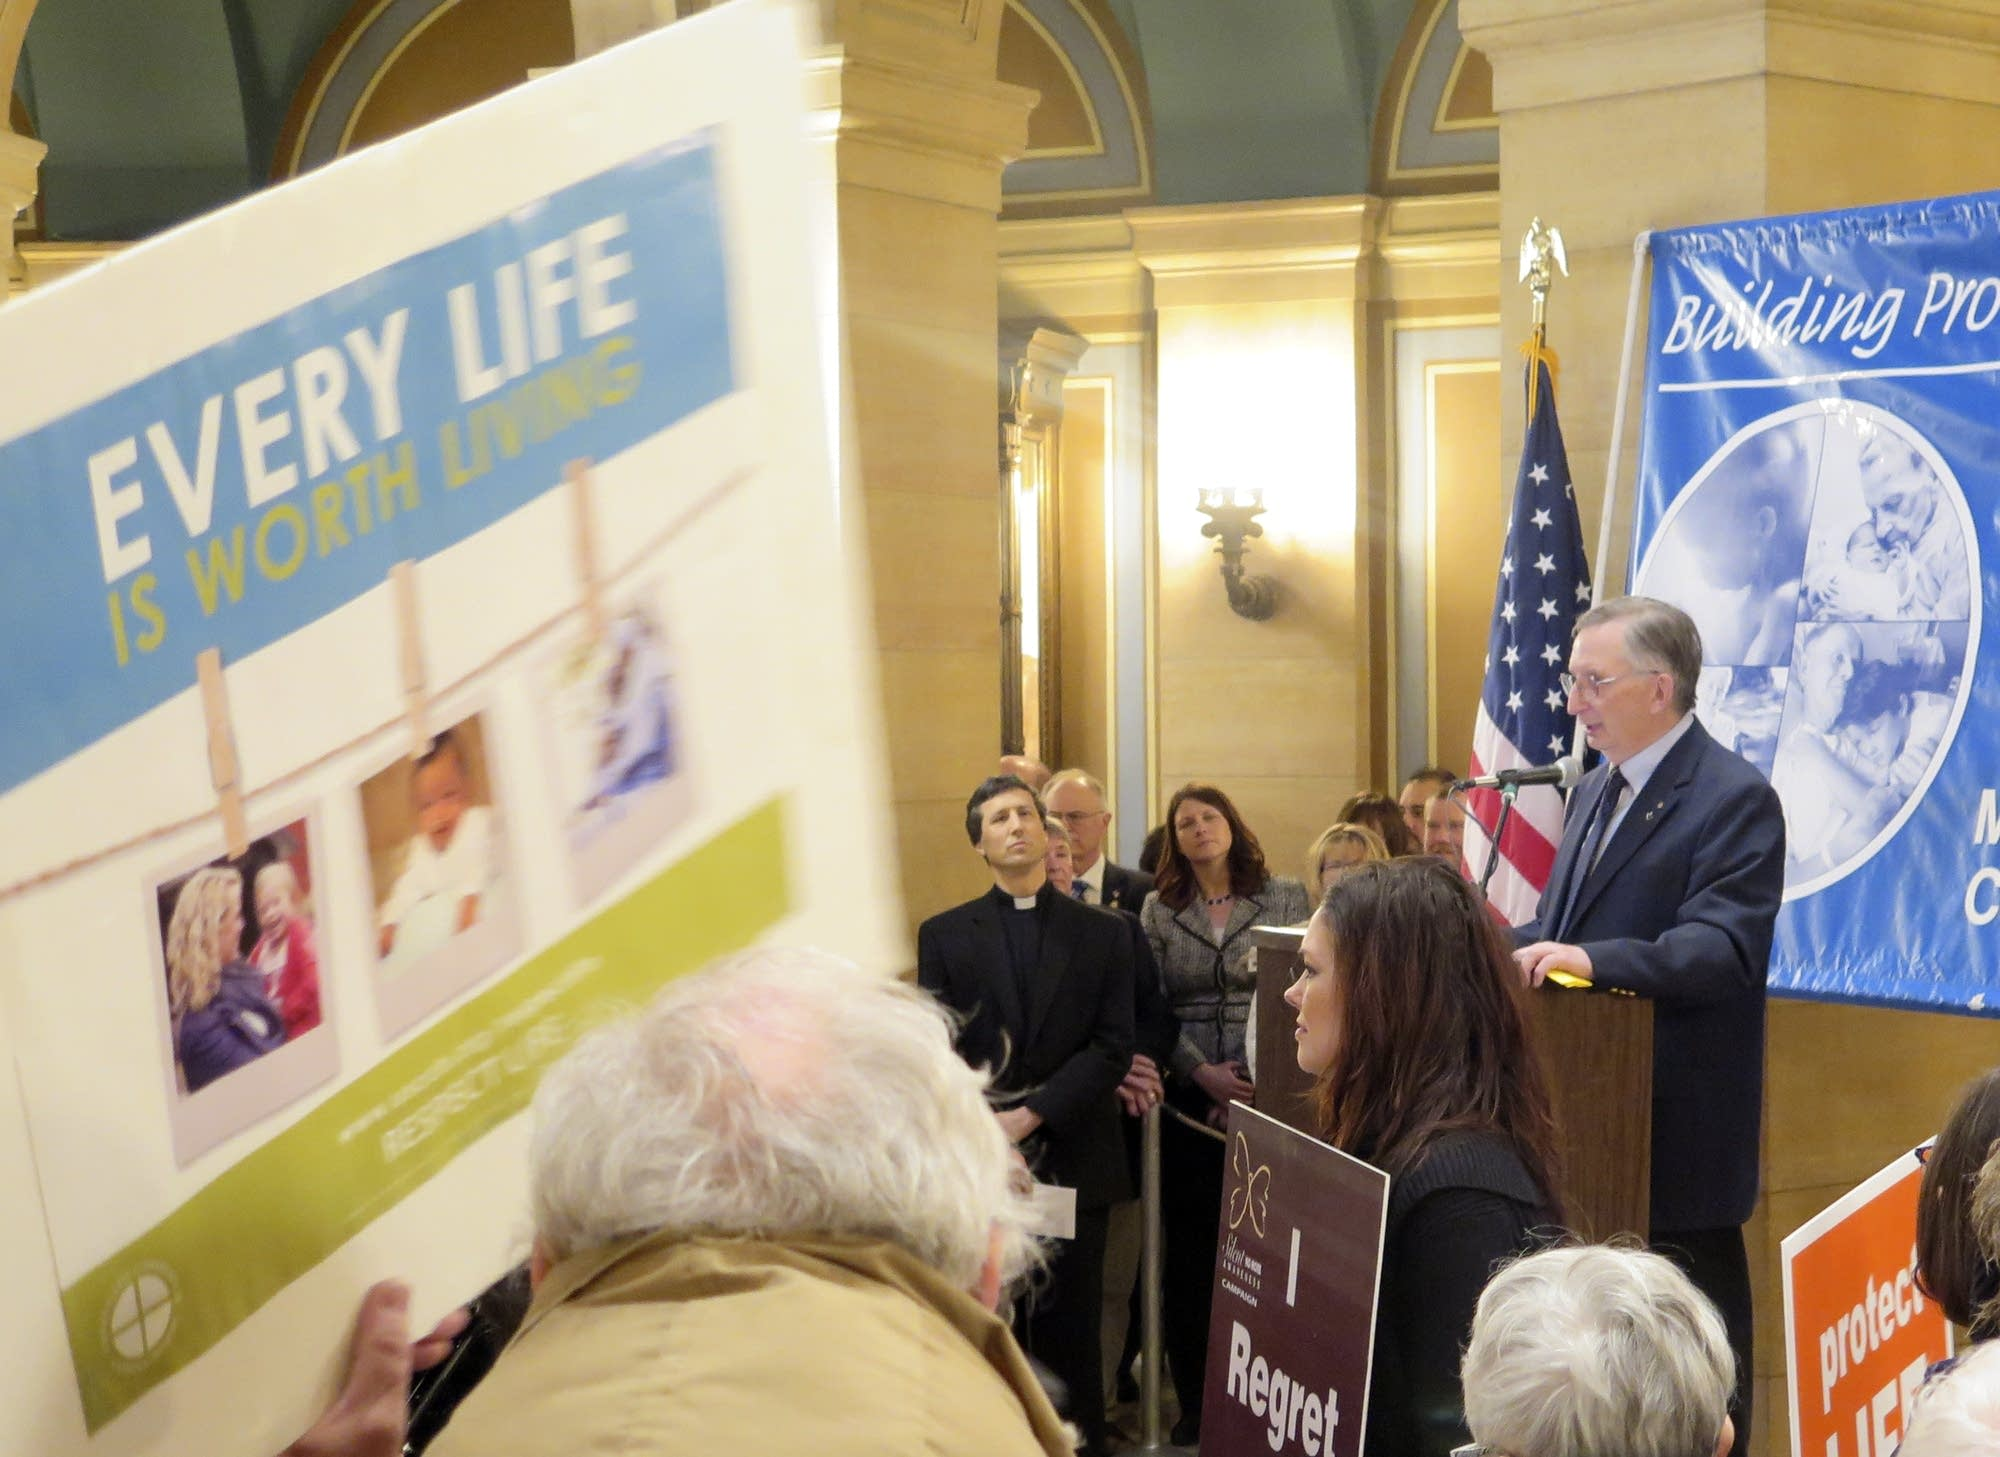 Pro-Life Activists Rally In Olympia To Protest Contraception, Abortion Coverage